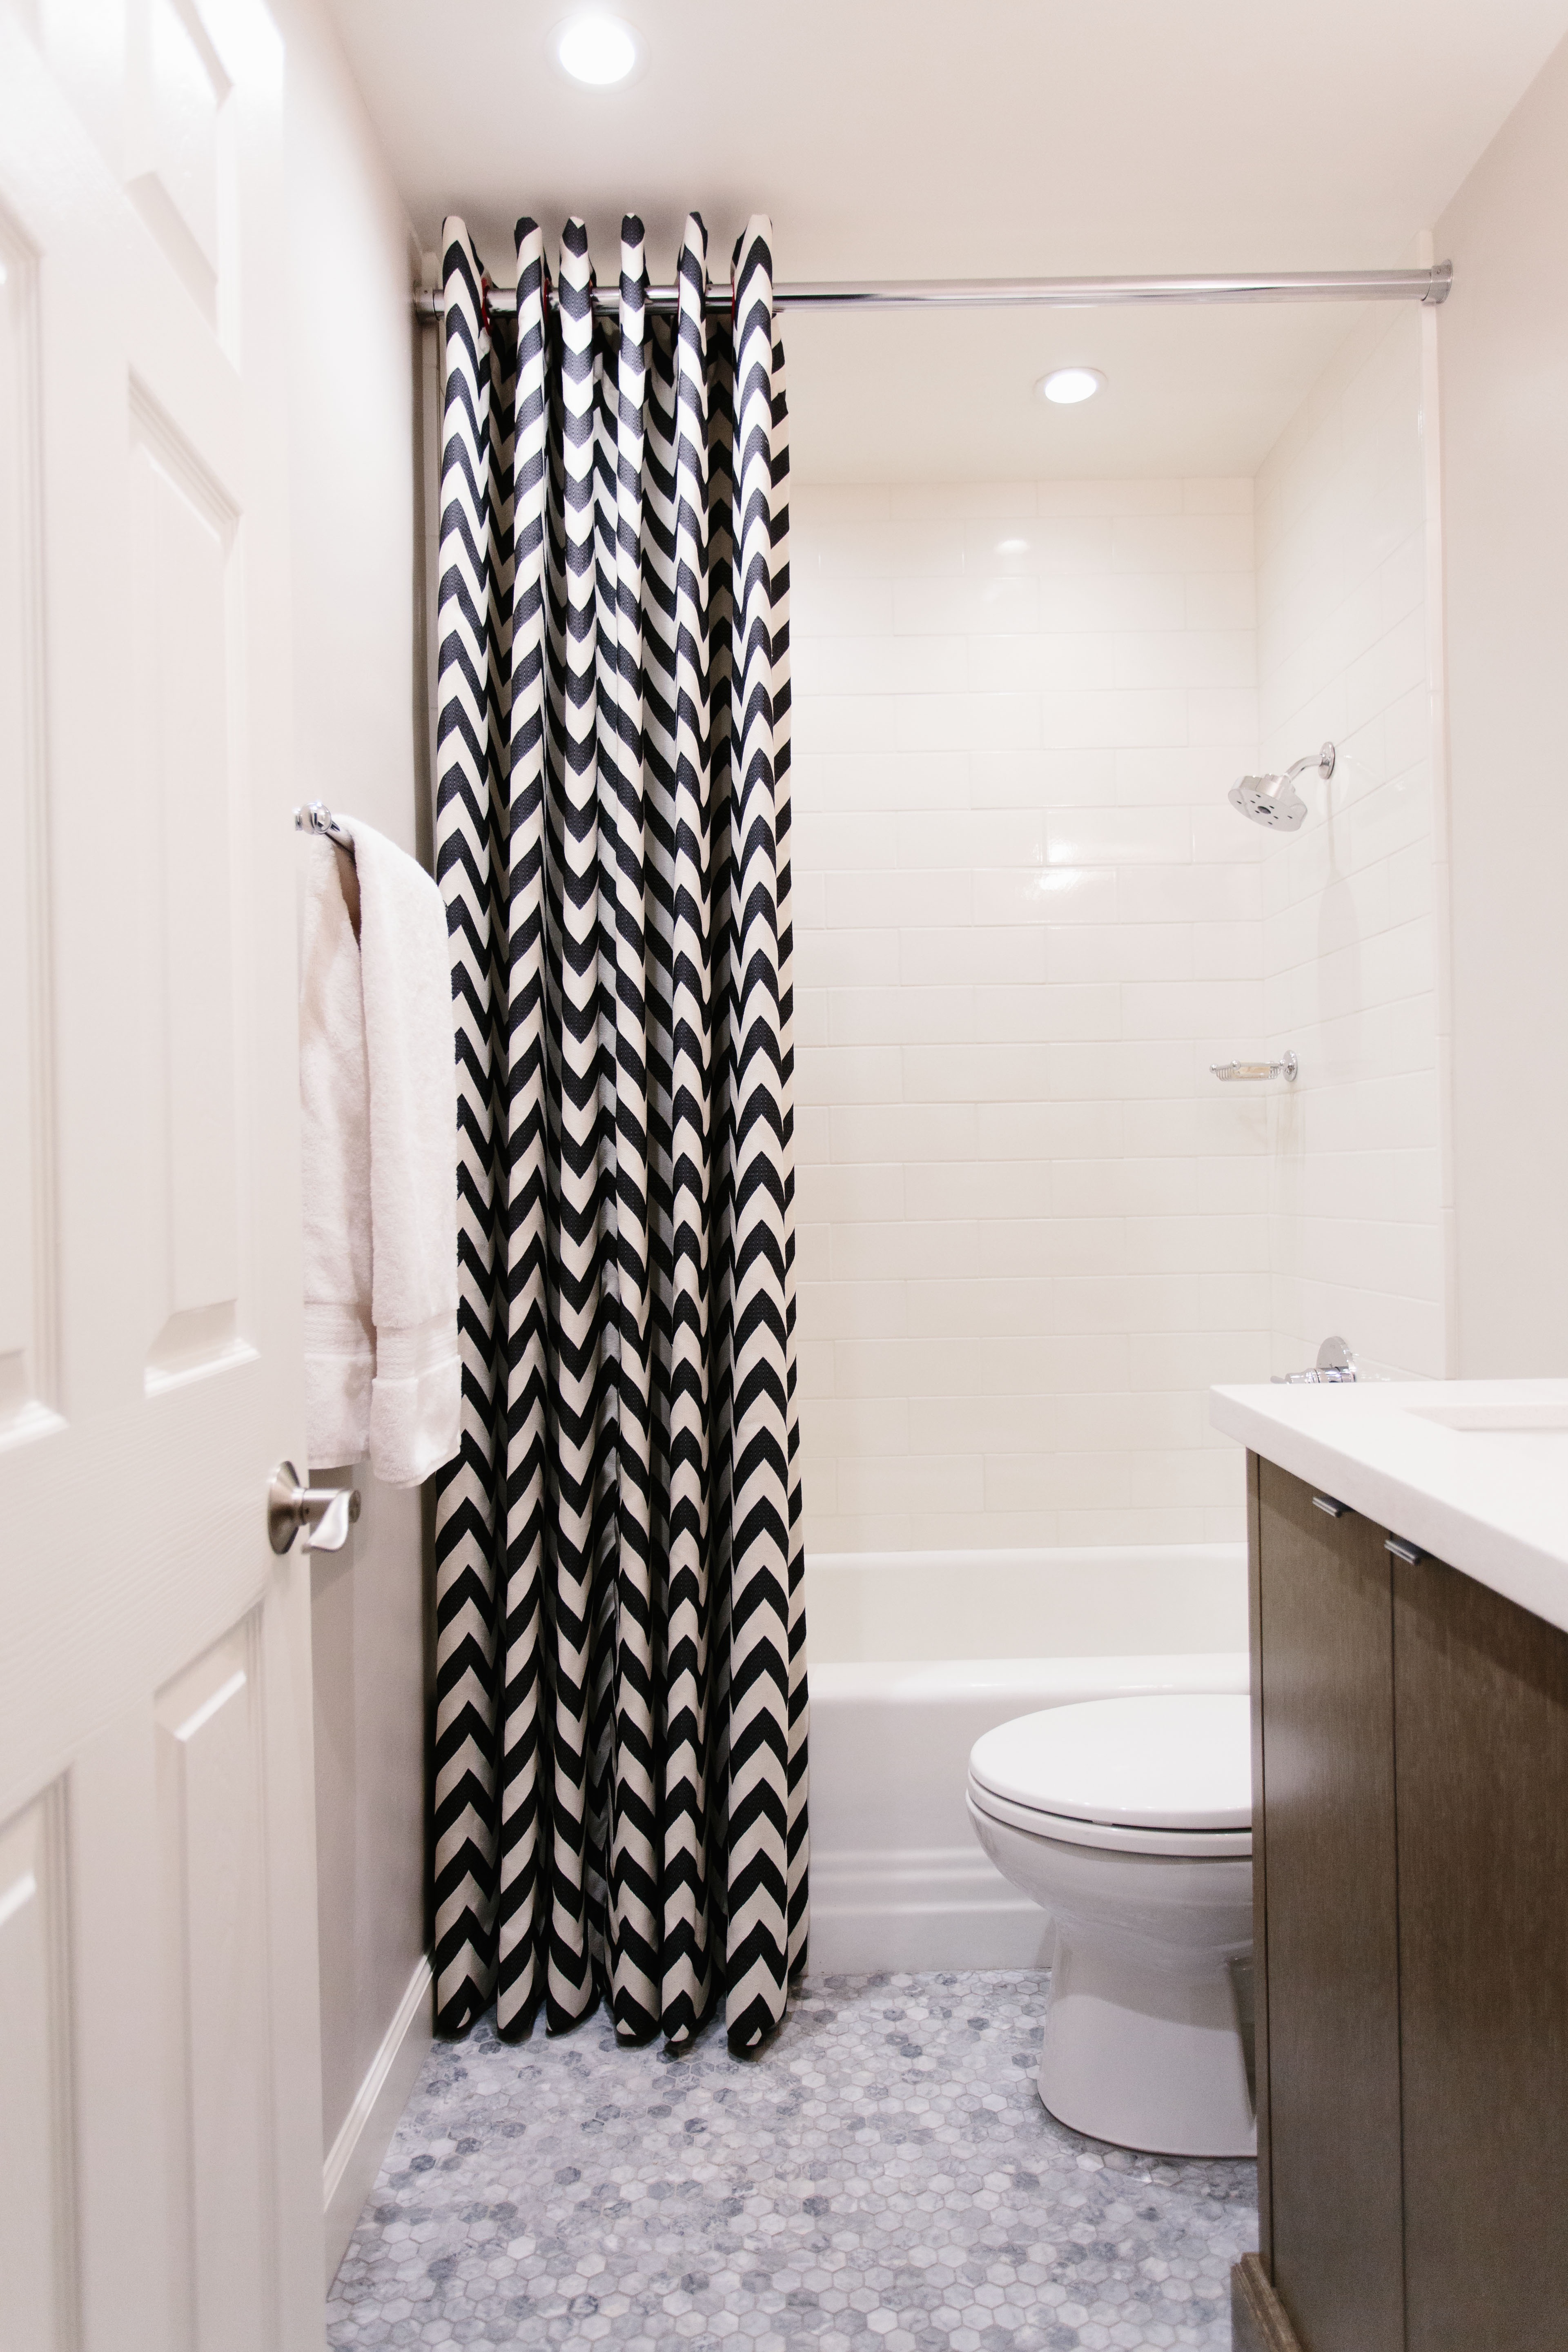 Small Bathroom In White With Black And White Shower Curtain (View 11 of 14)